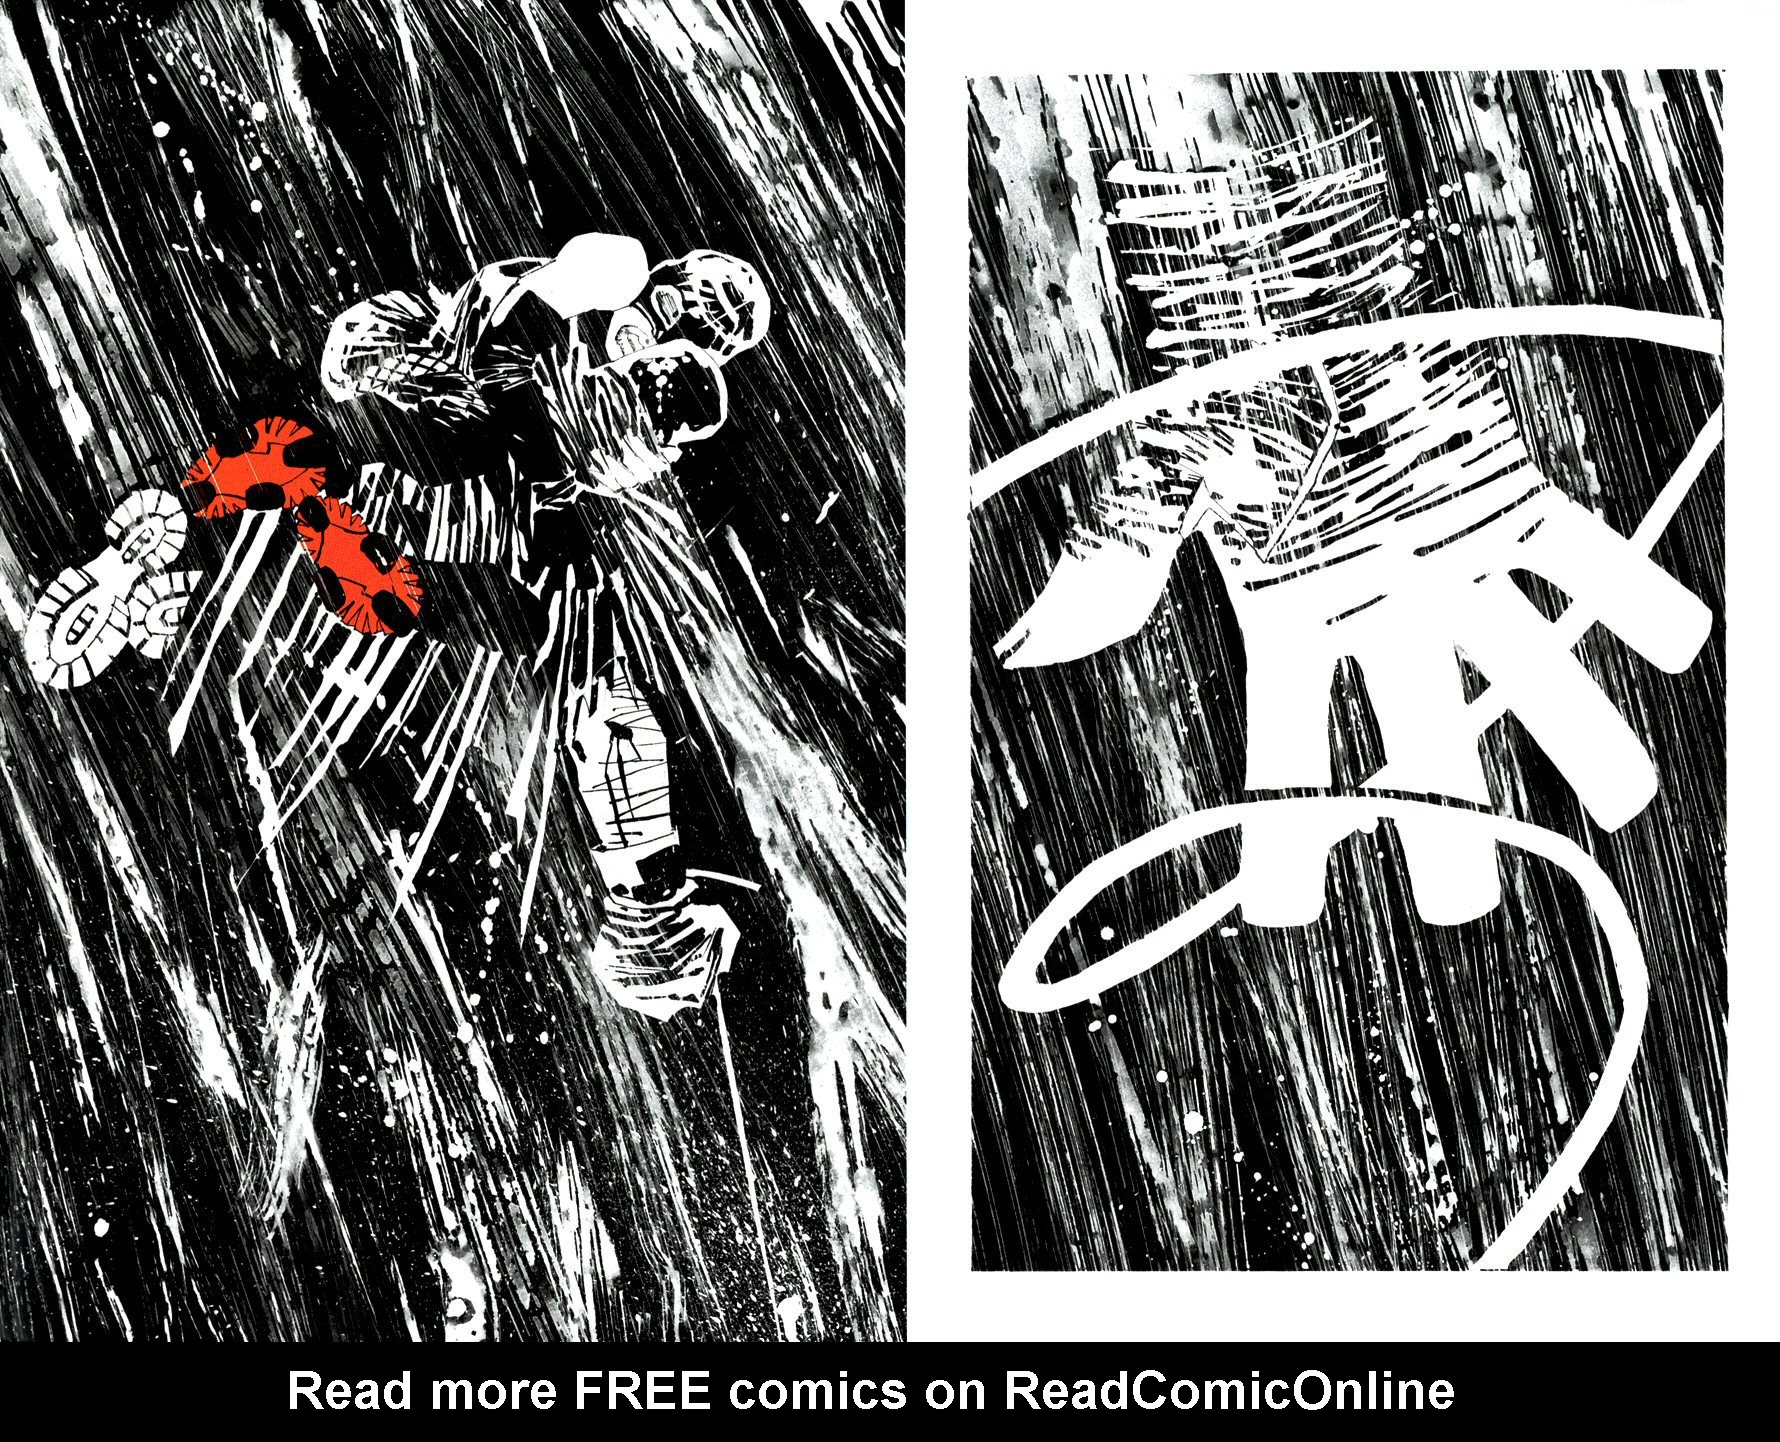 Read online Frank Miller's Holy Terror comic -  Issue # TPB - 20